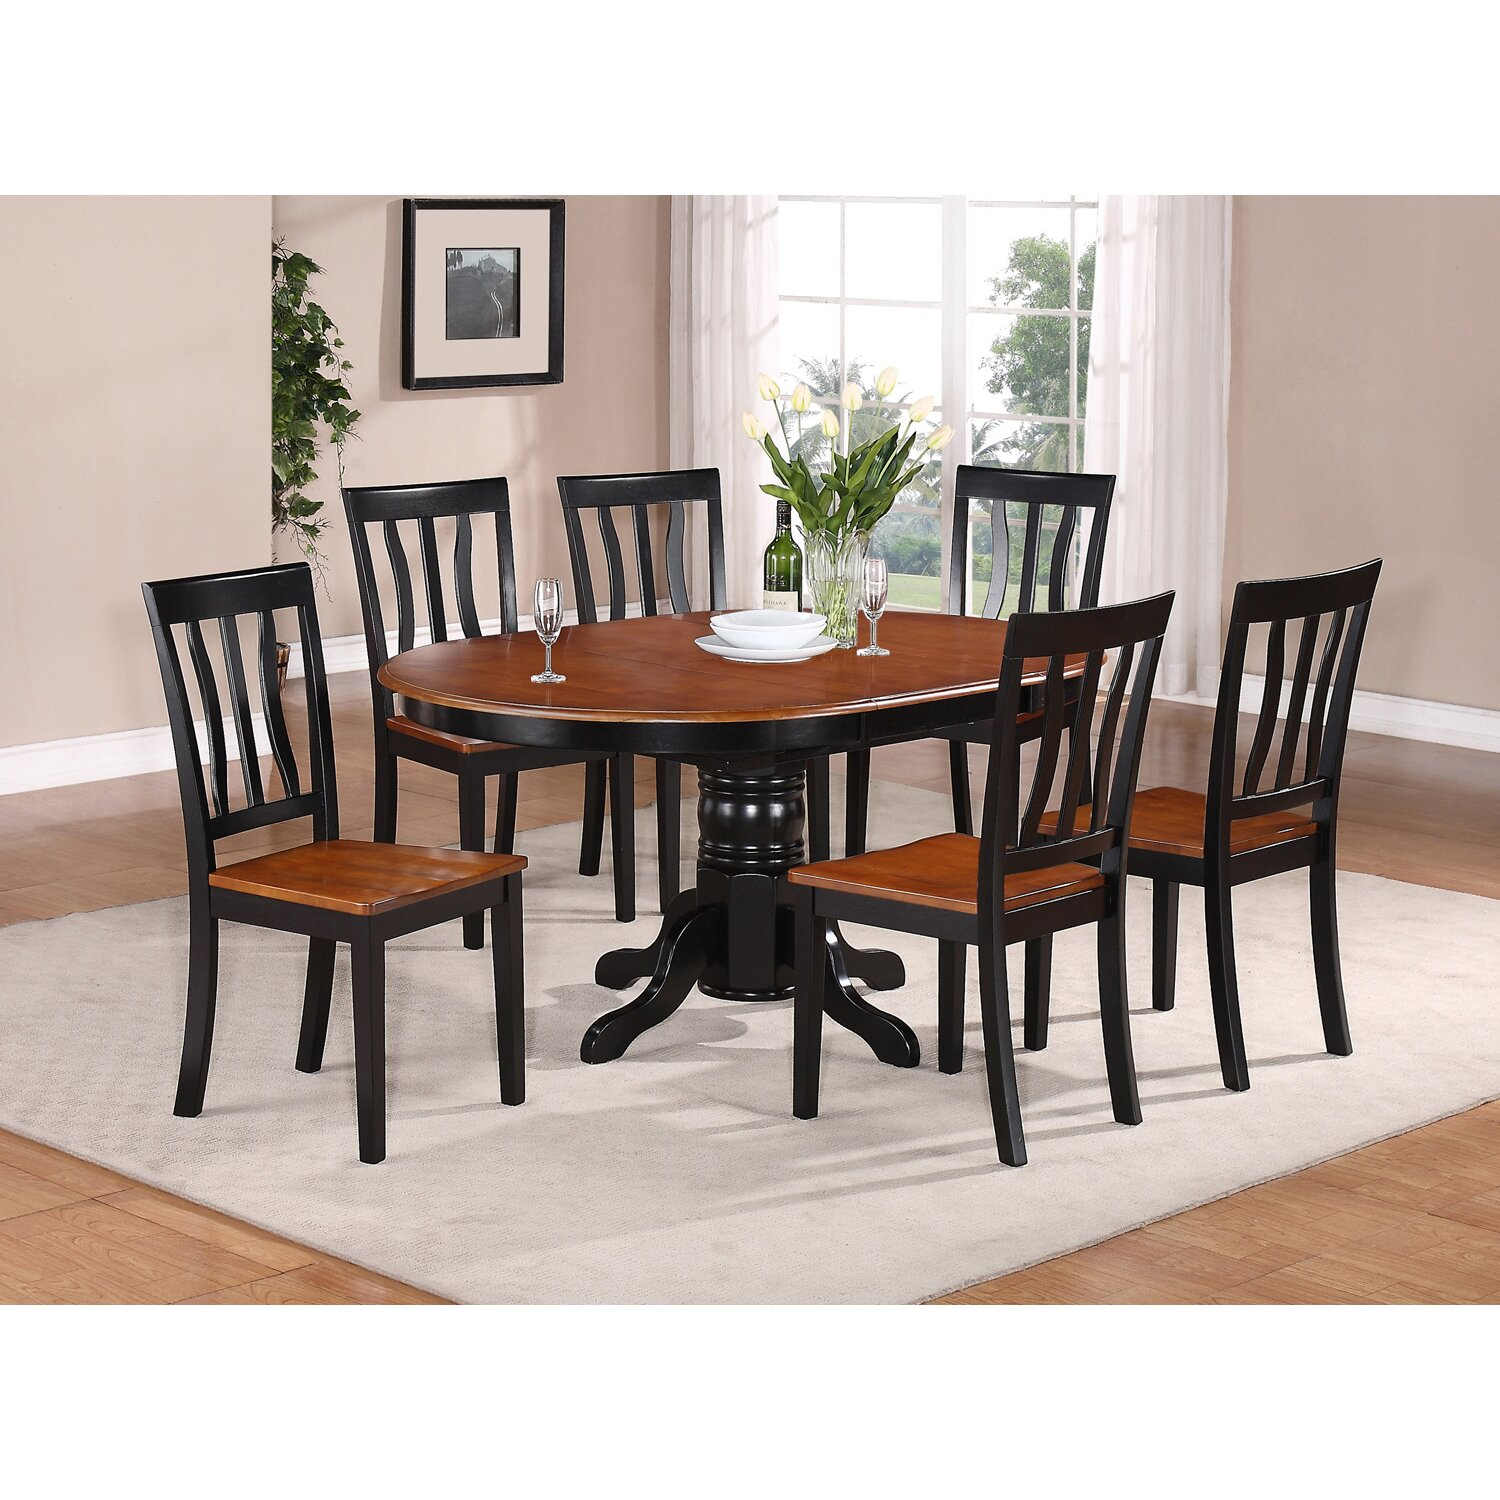 Darby Home Co C2 AE Attamore 7 Piece Dining Set DBYH wayfair kitchen chairs Darby Home Co reg Attamore 7 Piece Dining Set